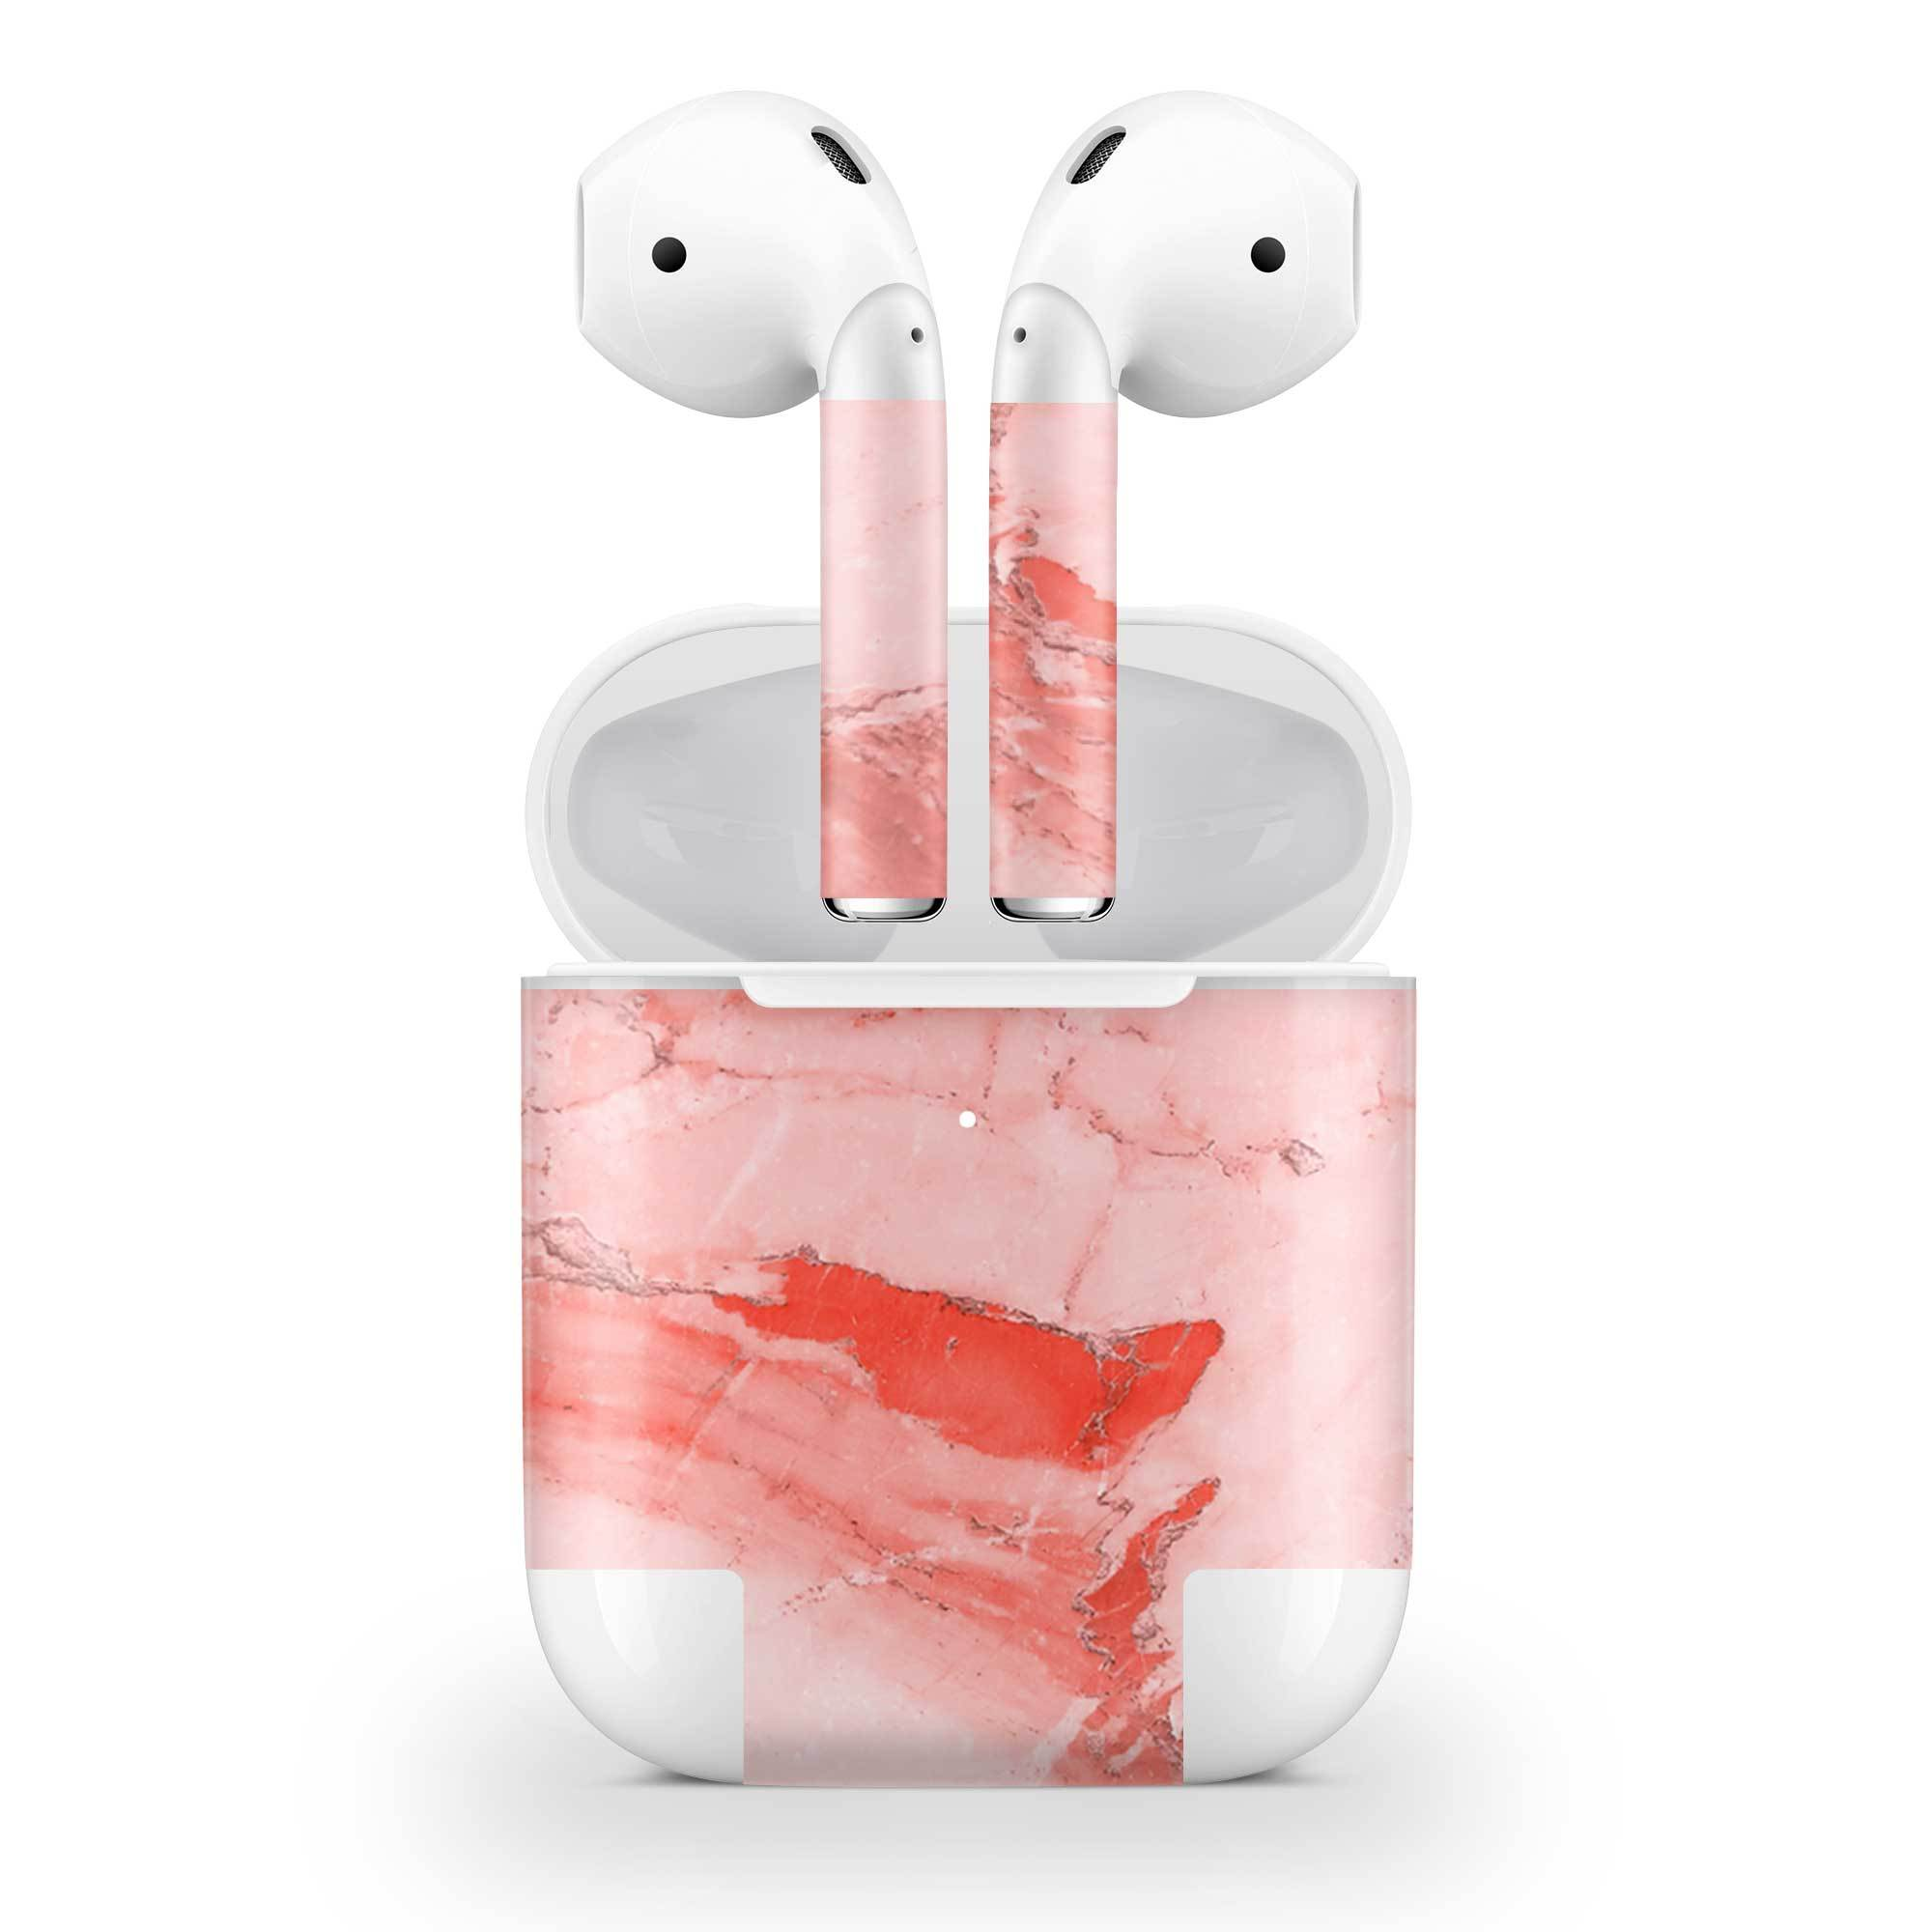 Coral Marble Skin AirPods Wireless Charging Case